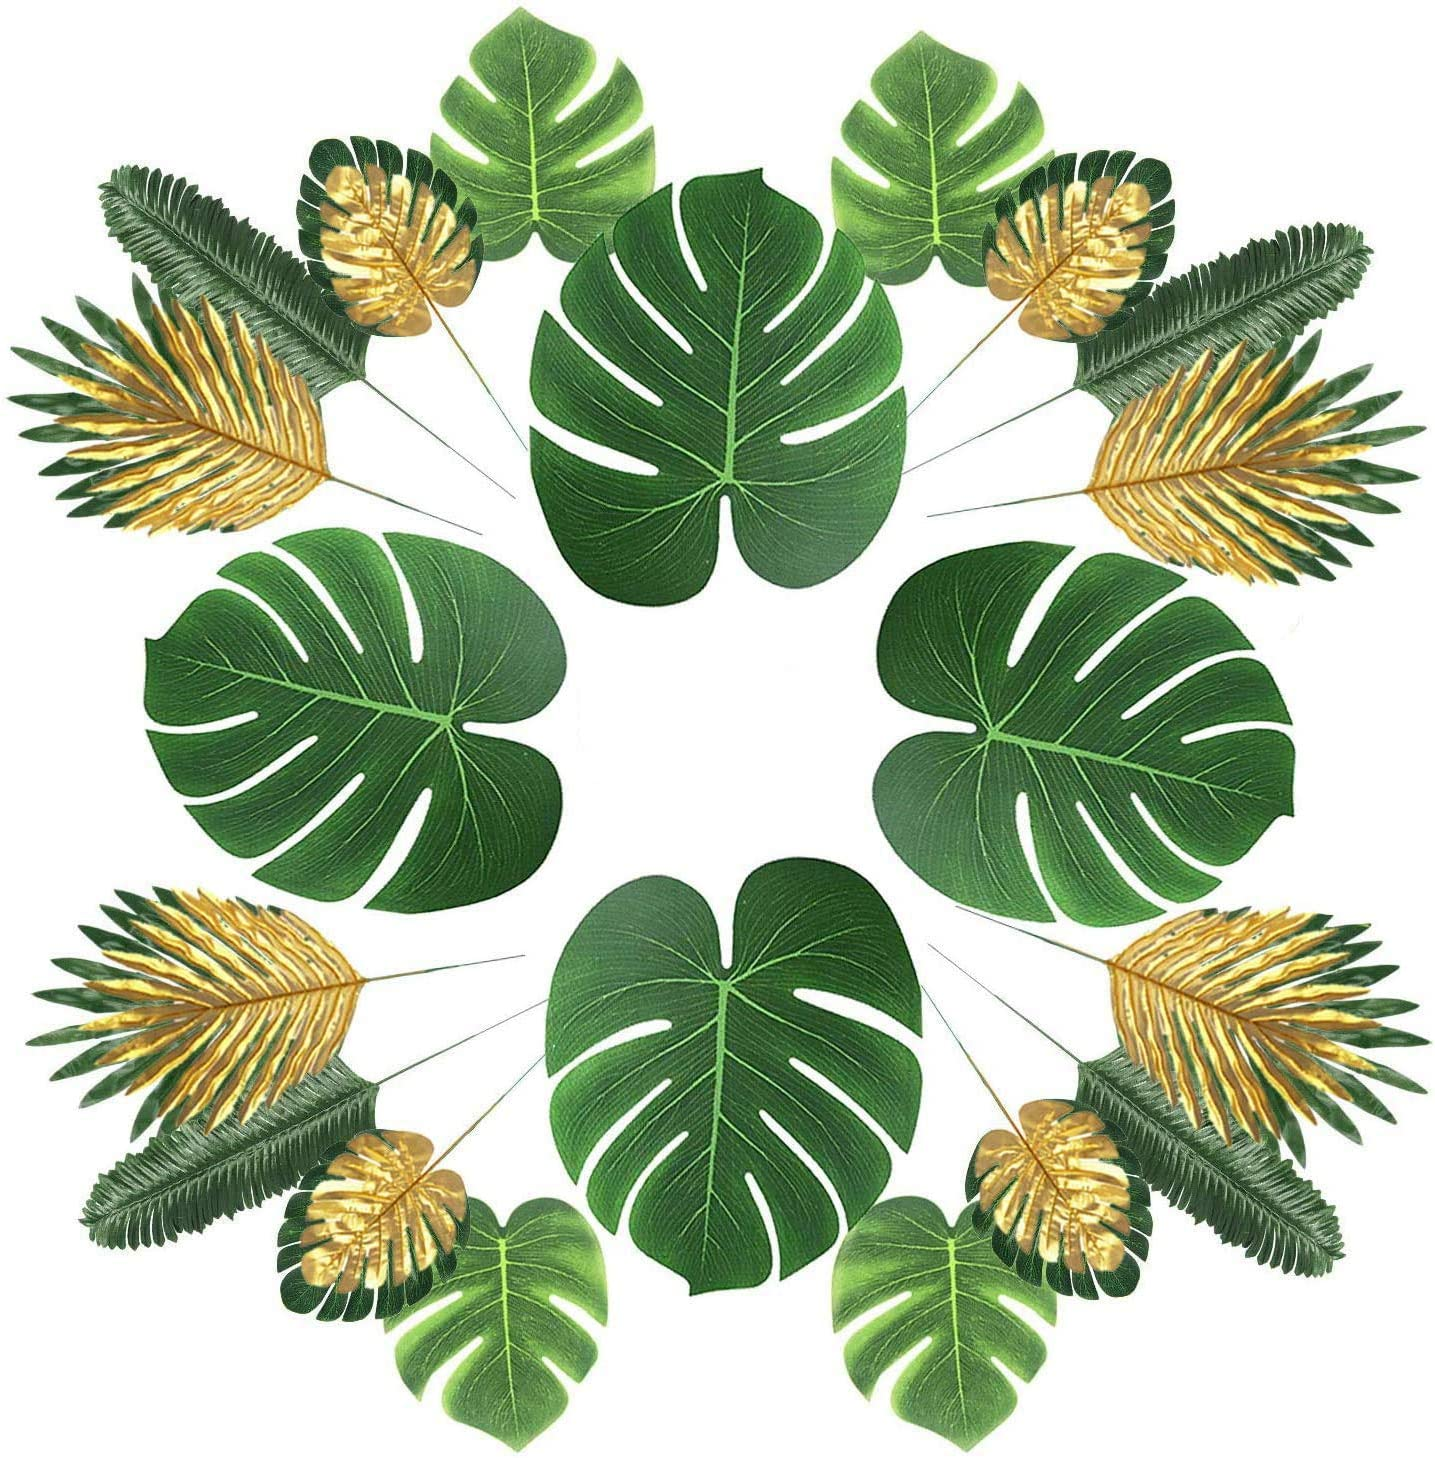 MAXZONE 66 Pieces 6 Kinds Artificial Palm Leaves with Faux Monstera Leaves Stems Tropical Plant Simulation Safari Leaves for Hawaiian Luau Party Jungle Beach Theme Party Table Leave Decorations